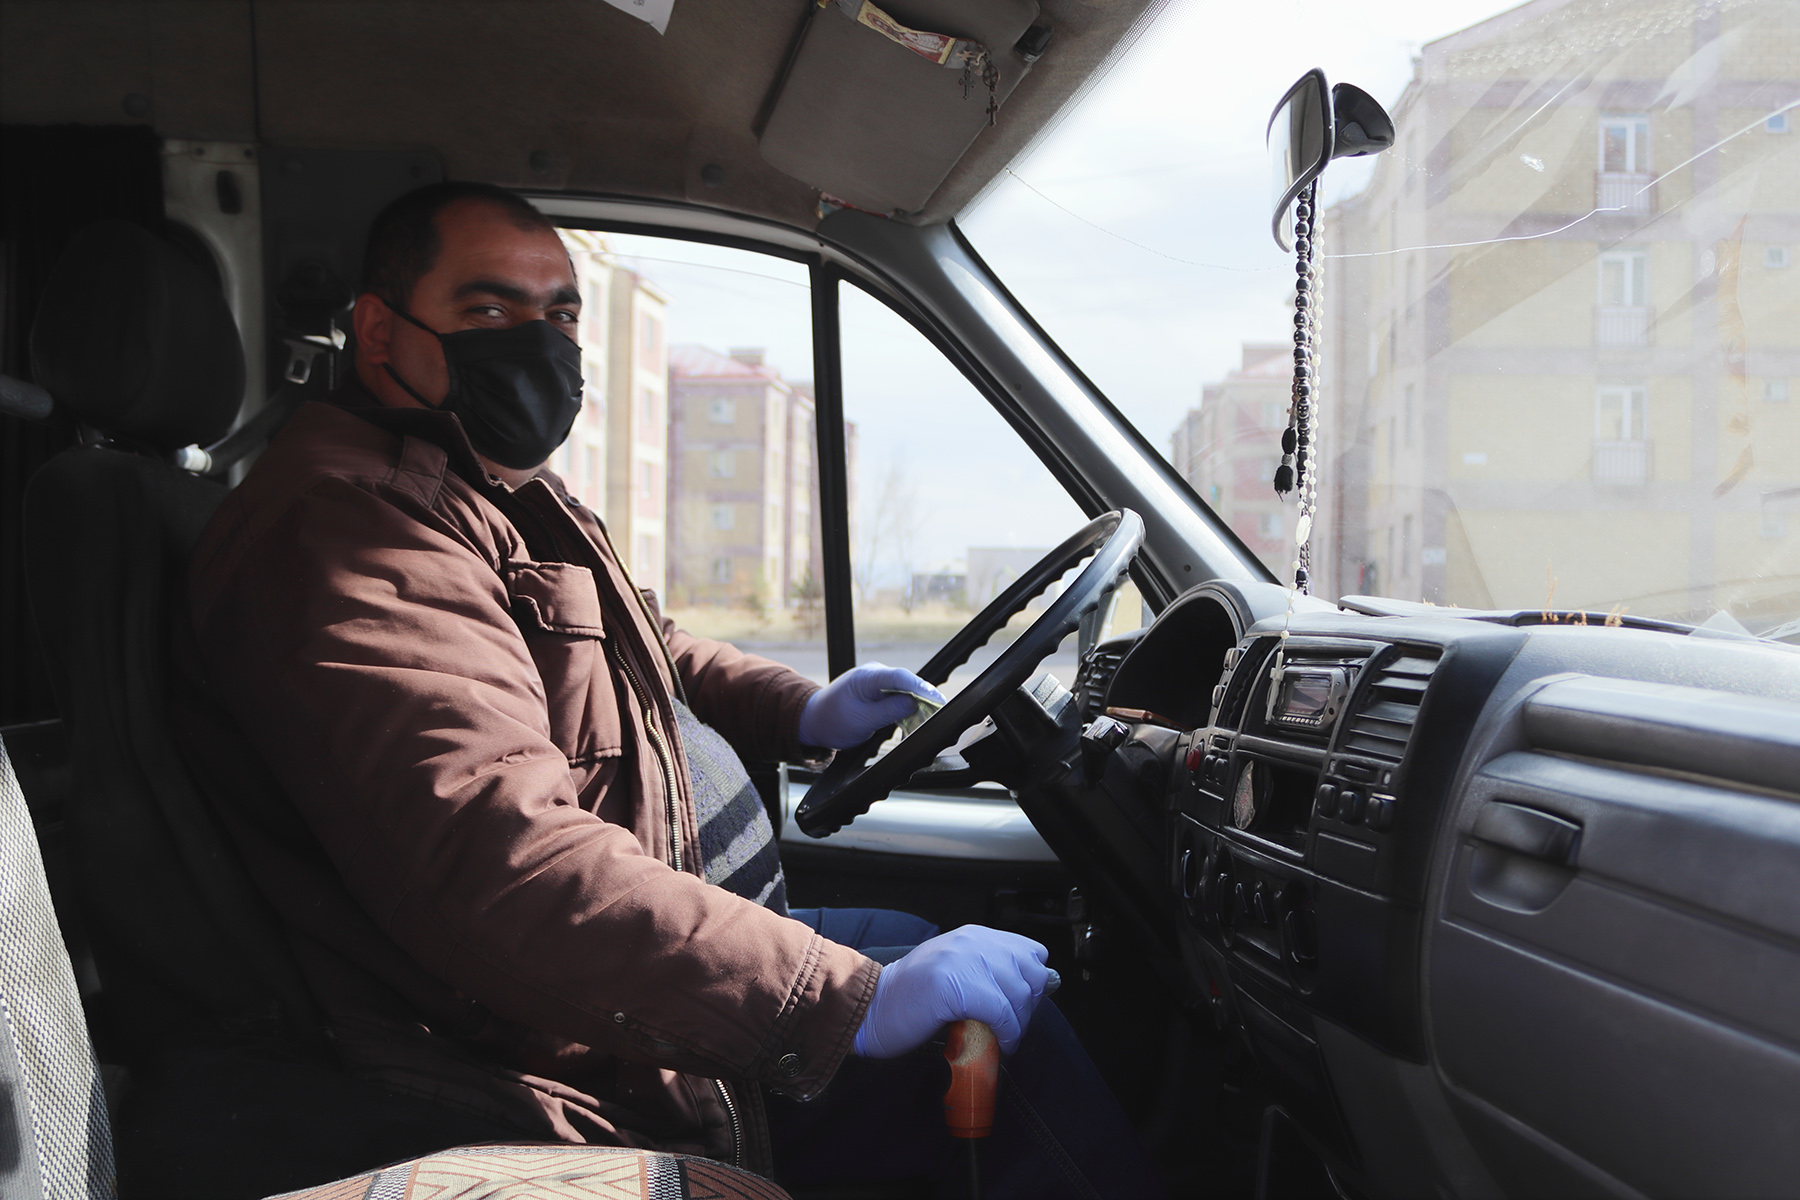 A bus driver in a mask before public transport was shut down. Photo: Anahit Harutyunyan/OC Media.